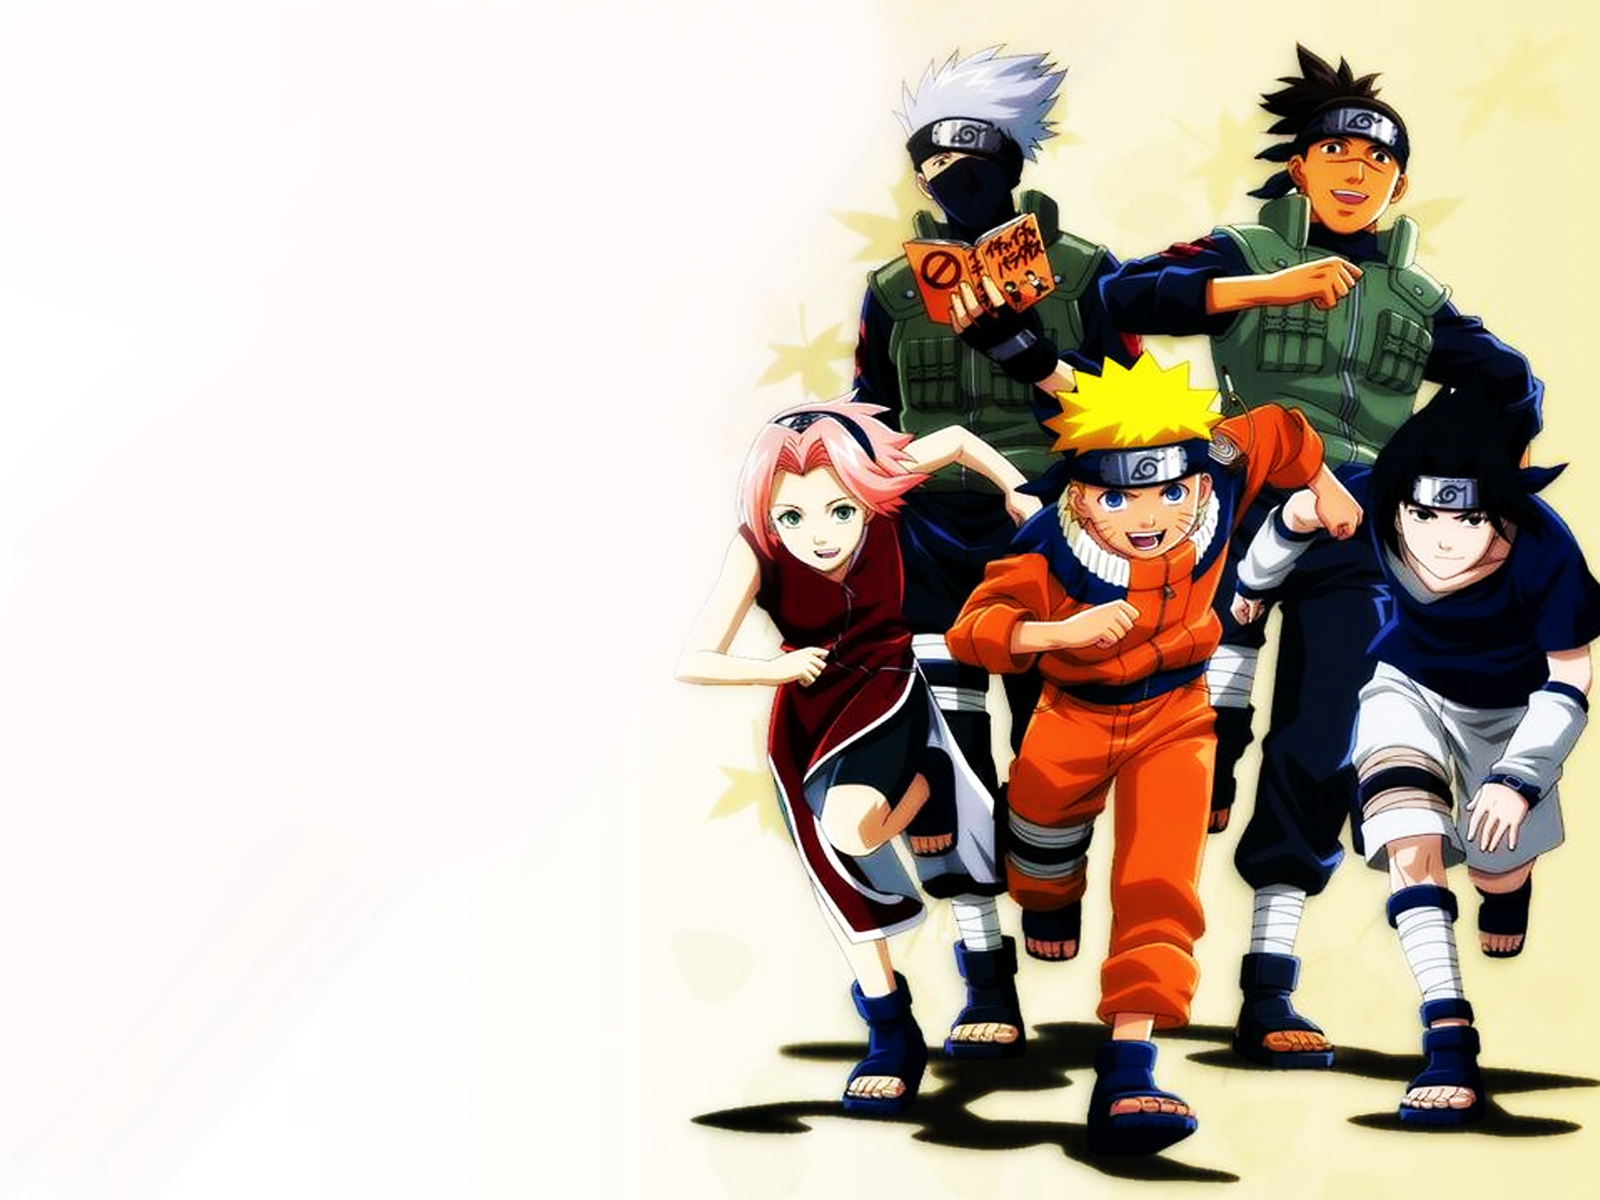 Naruto Shippuden 172 computer desktop wallpapers pictures 1600x1200